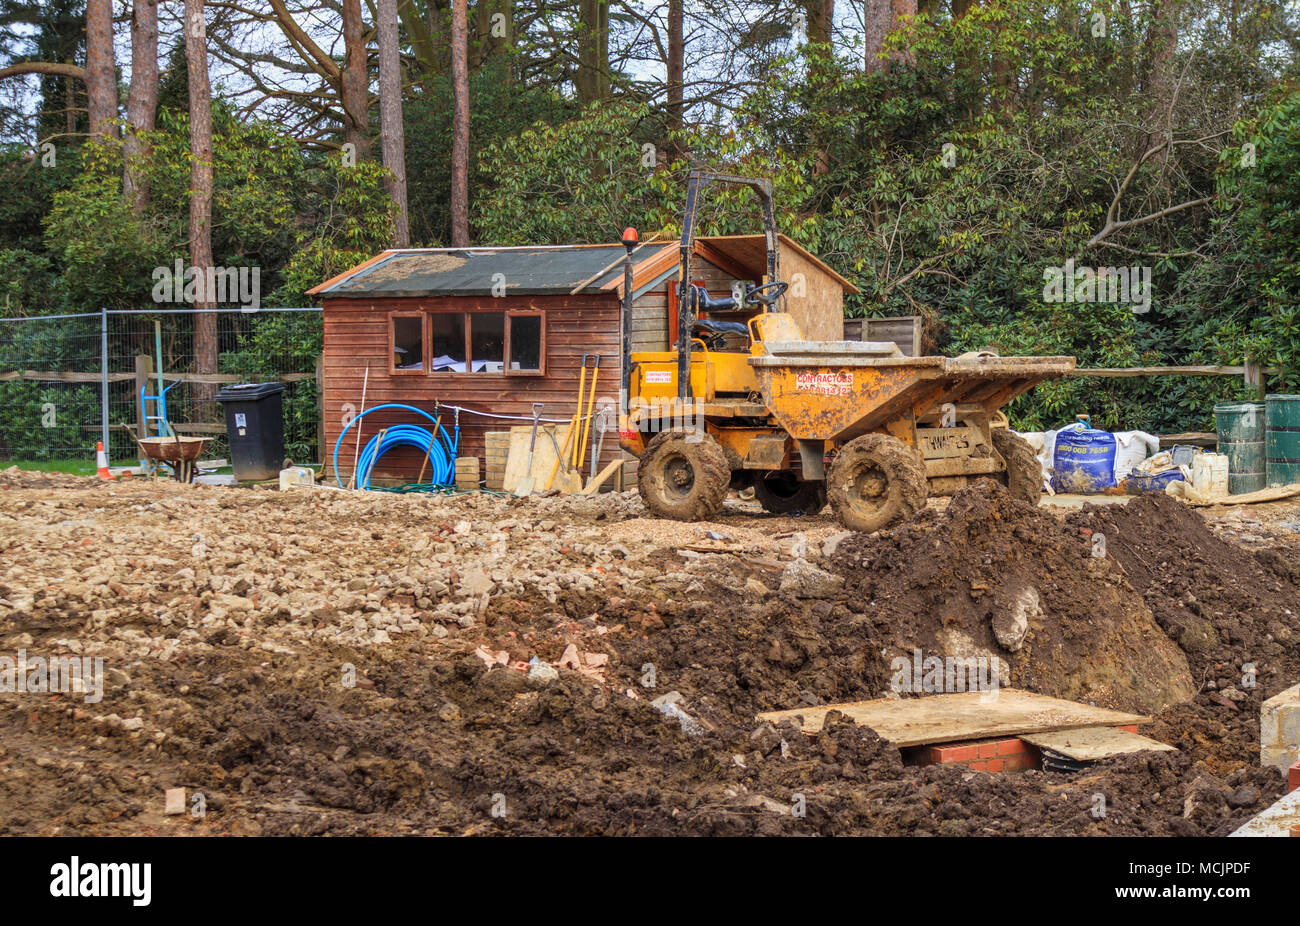 Dumper vehicle on a muddy churned up residential construction site in Surrey, southeast England after wet, bad weather - Stock Image